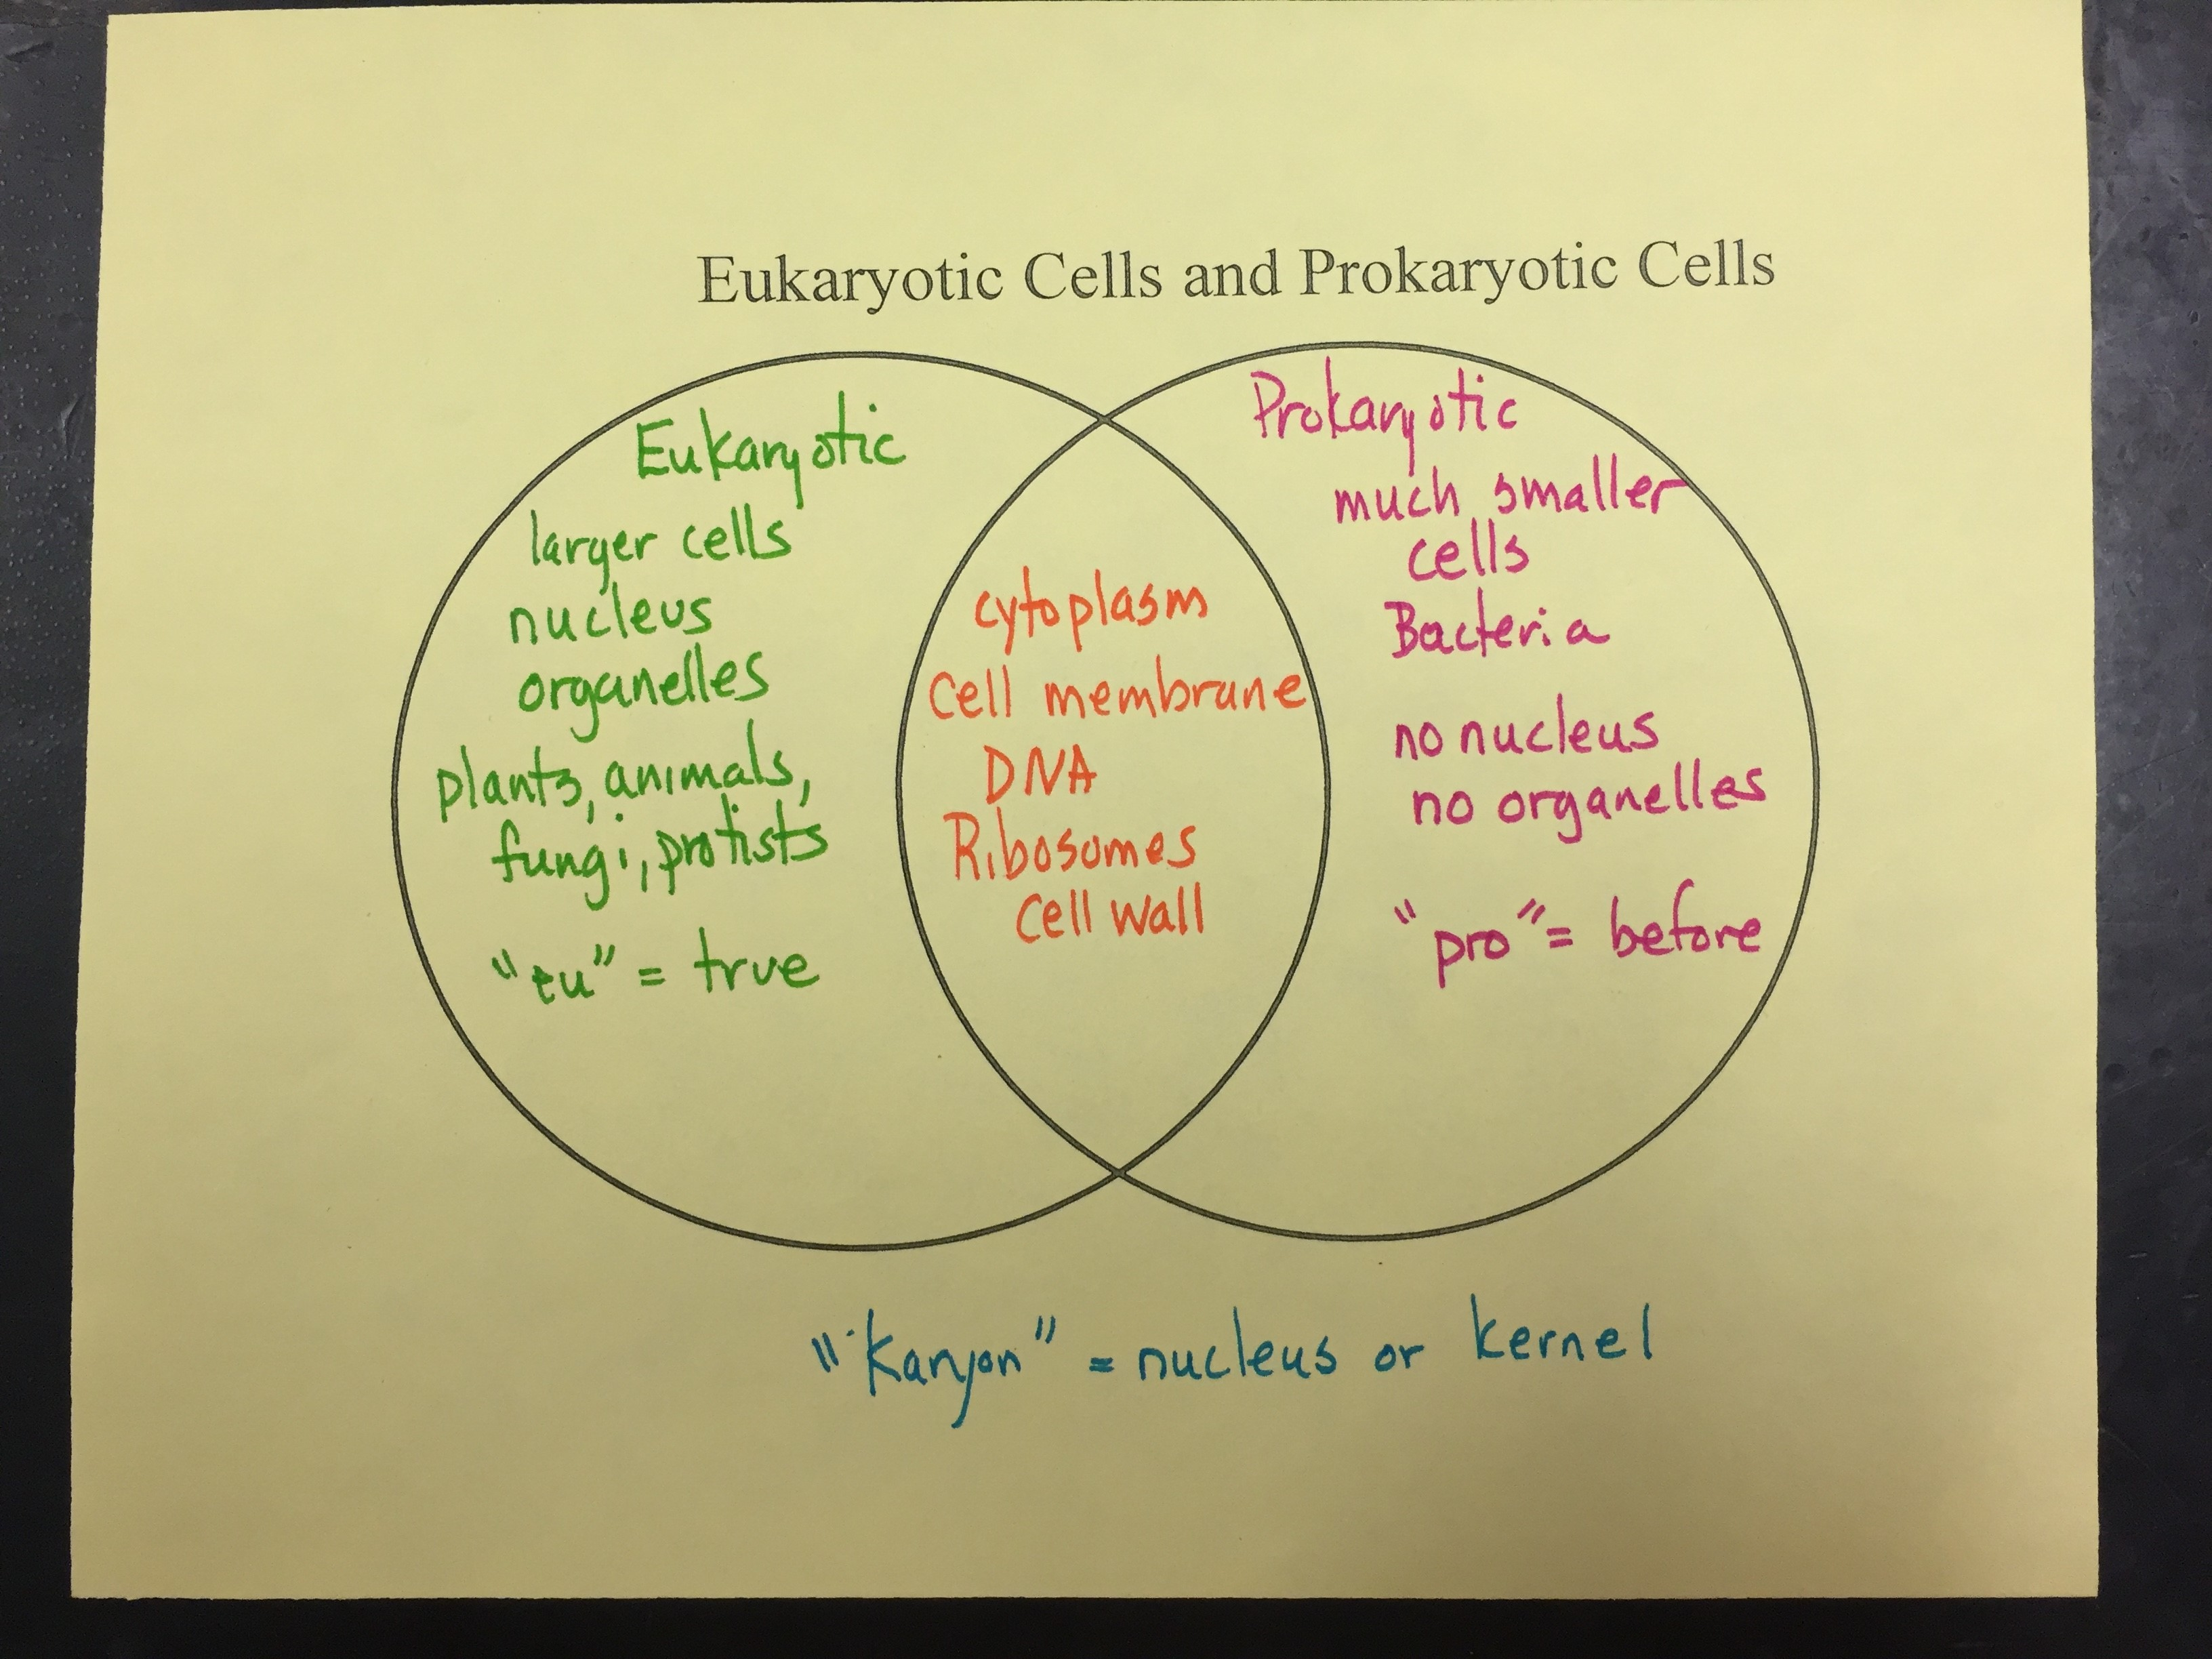 Eukaryotic Plant Cell Diagram Diagram Of A Eukaryotic Cell